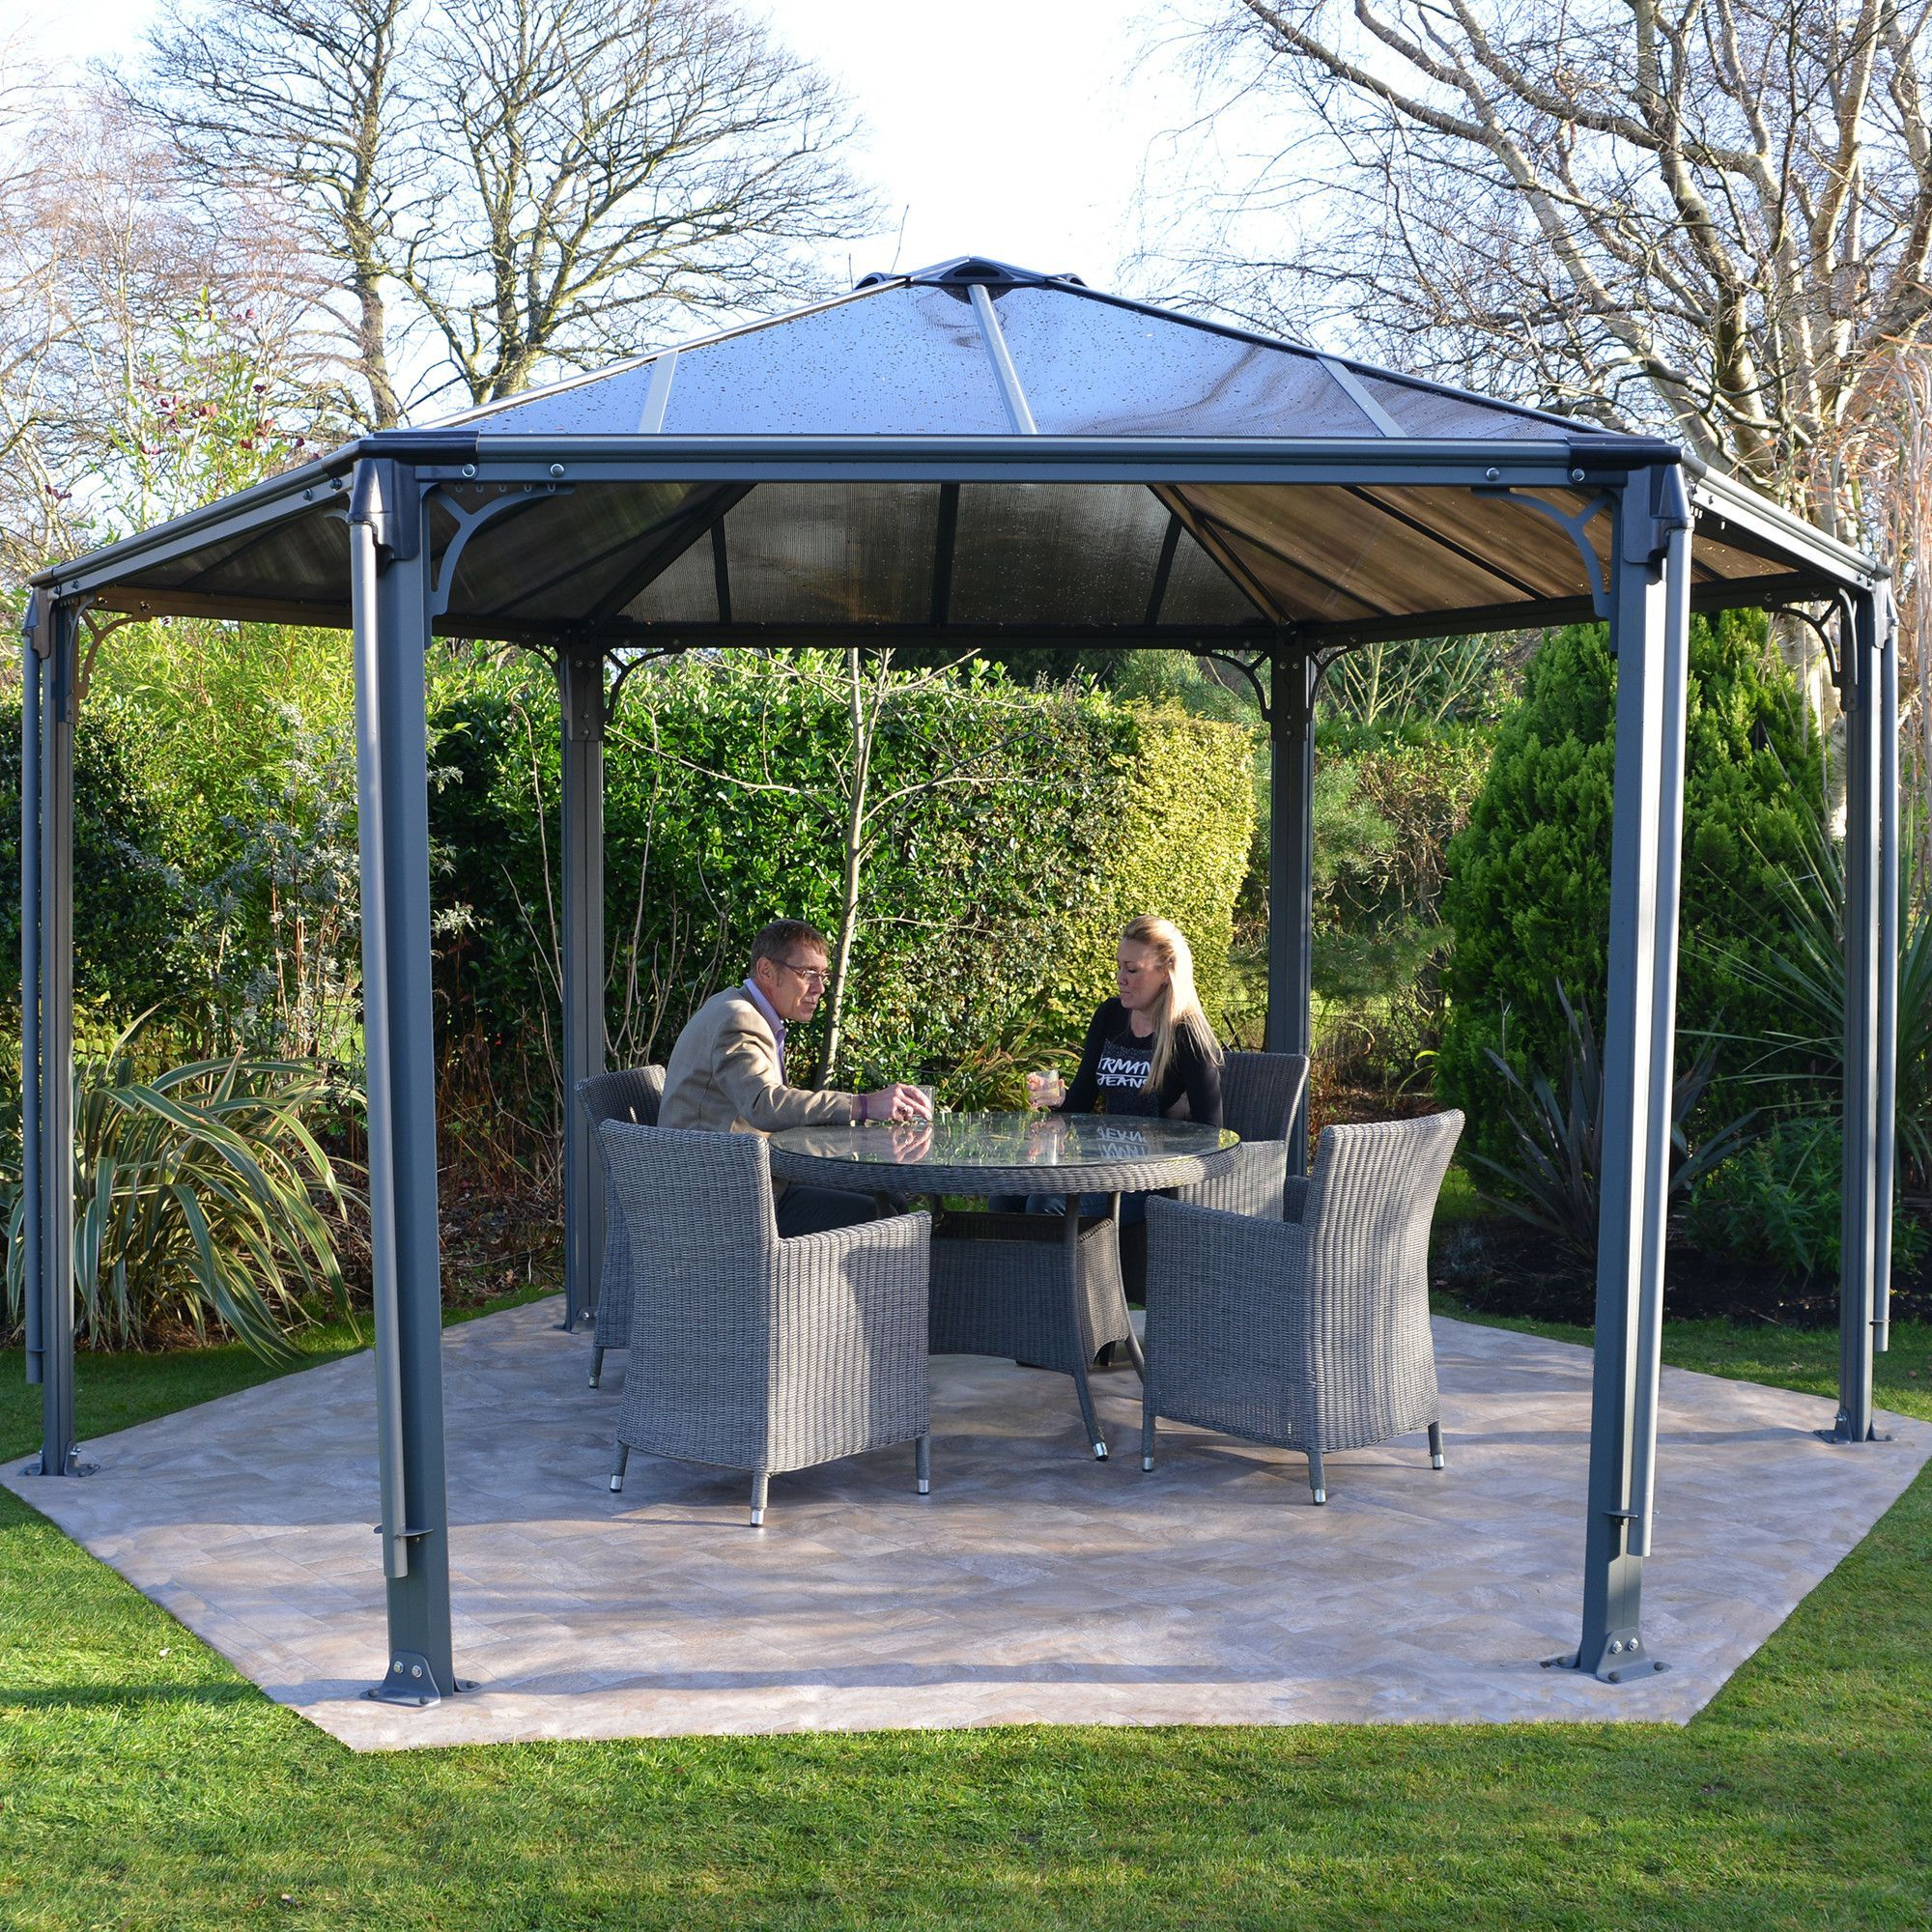 Monaco 13 Ft W X 15 Ft D Aluminum Patio Gazebo Patio Gazebo Outdoor Pergola Garden Gazebo